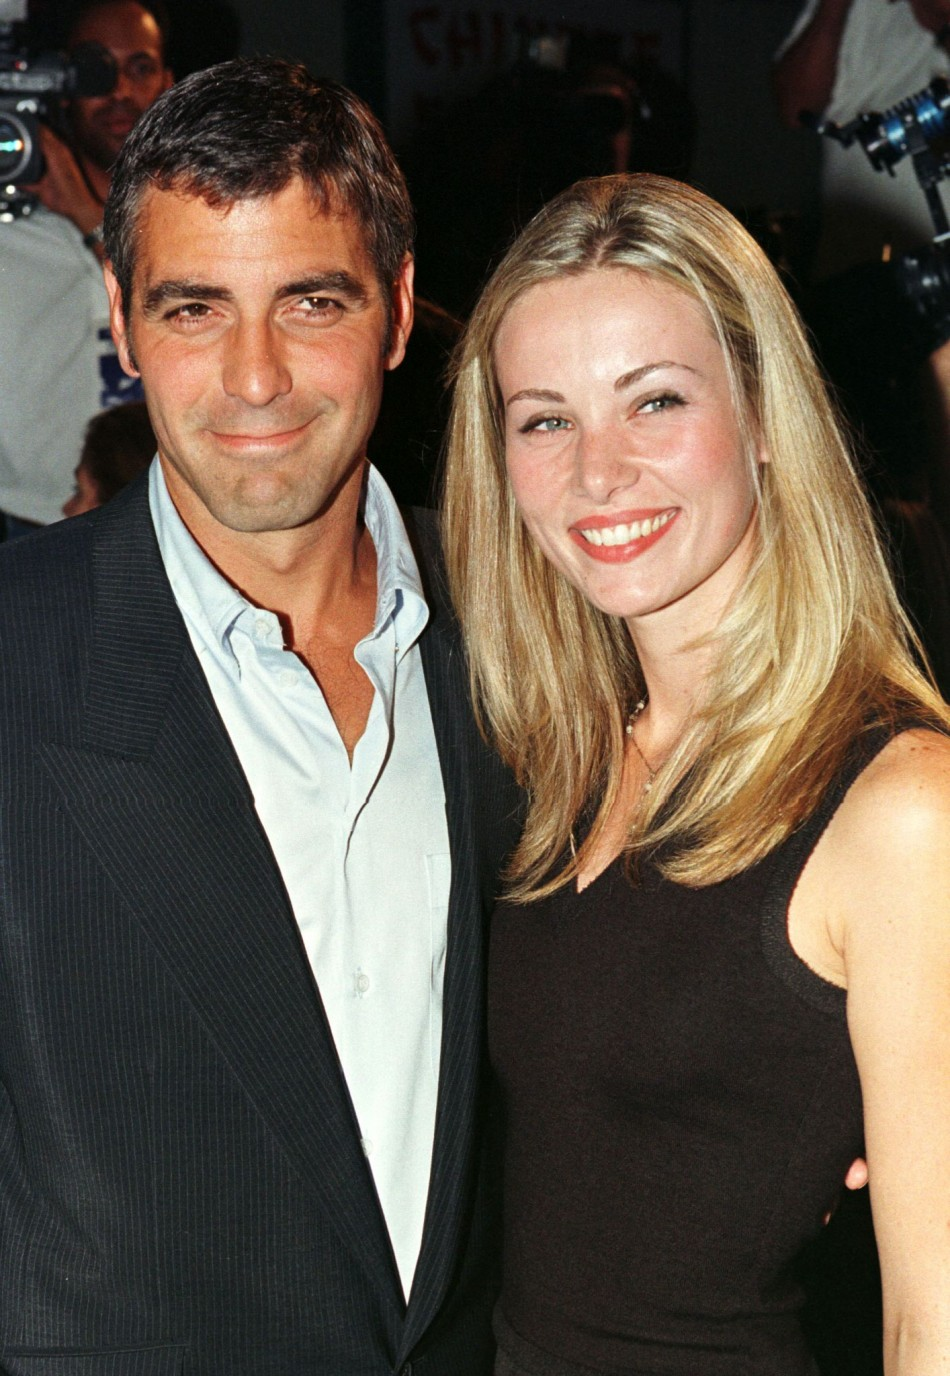 ver pelicula corredores estelares latino dating: who is george clooney dating now 2011